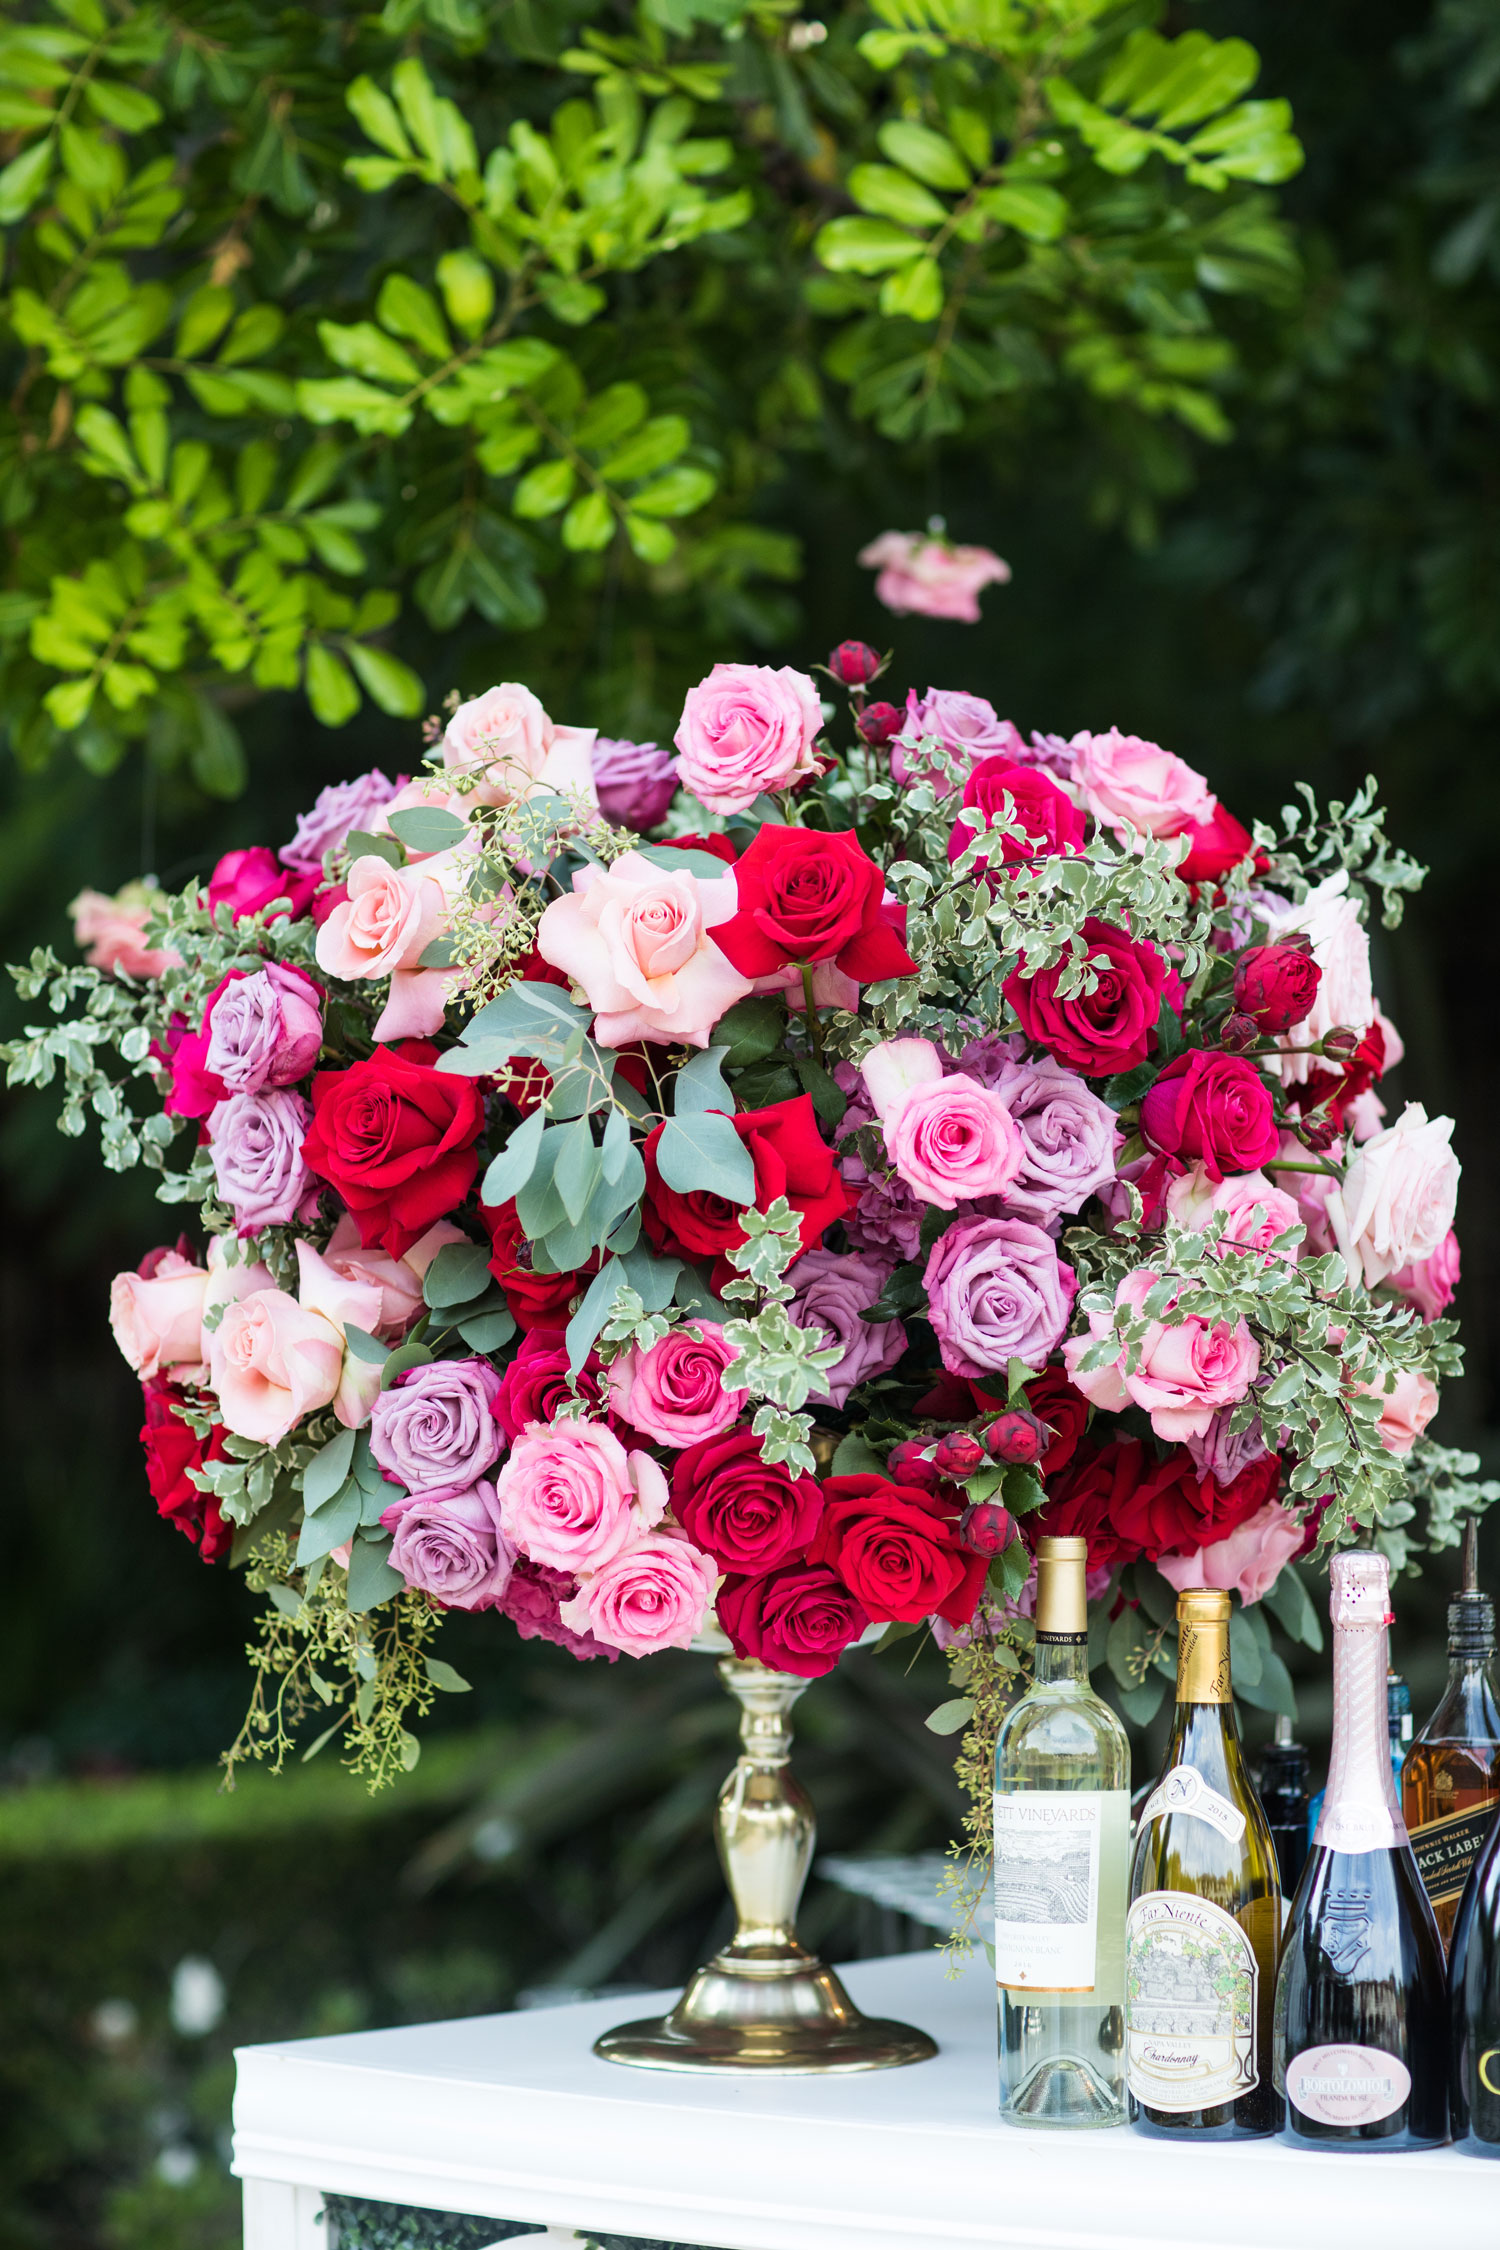 pink and red flower rose arrangement valentine's day bouquet inspiration